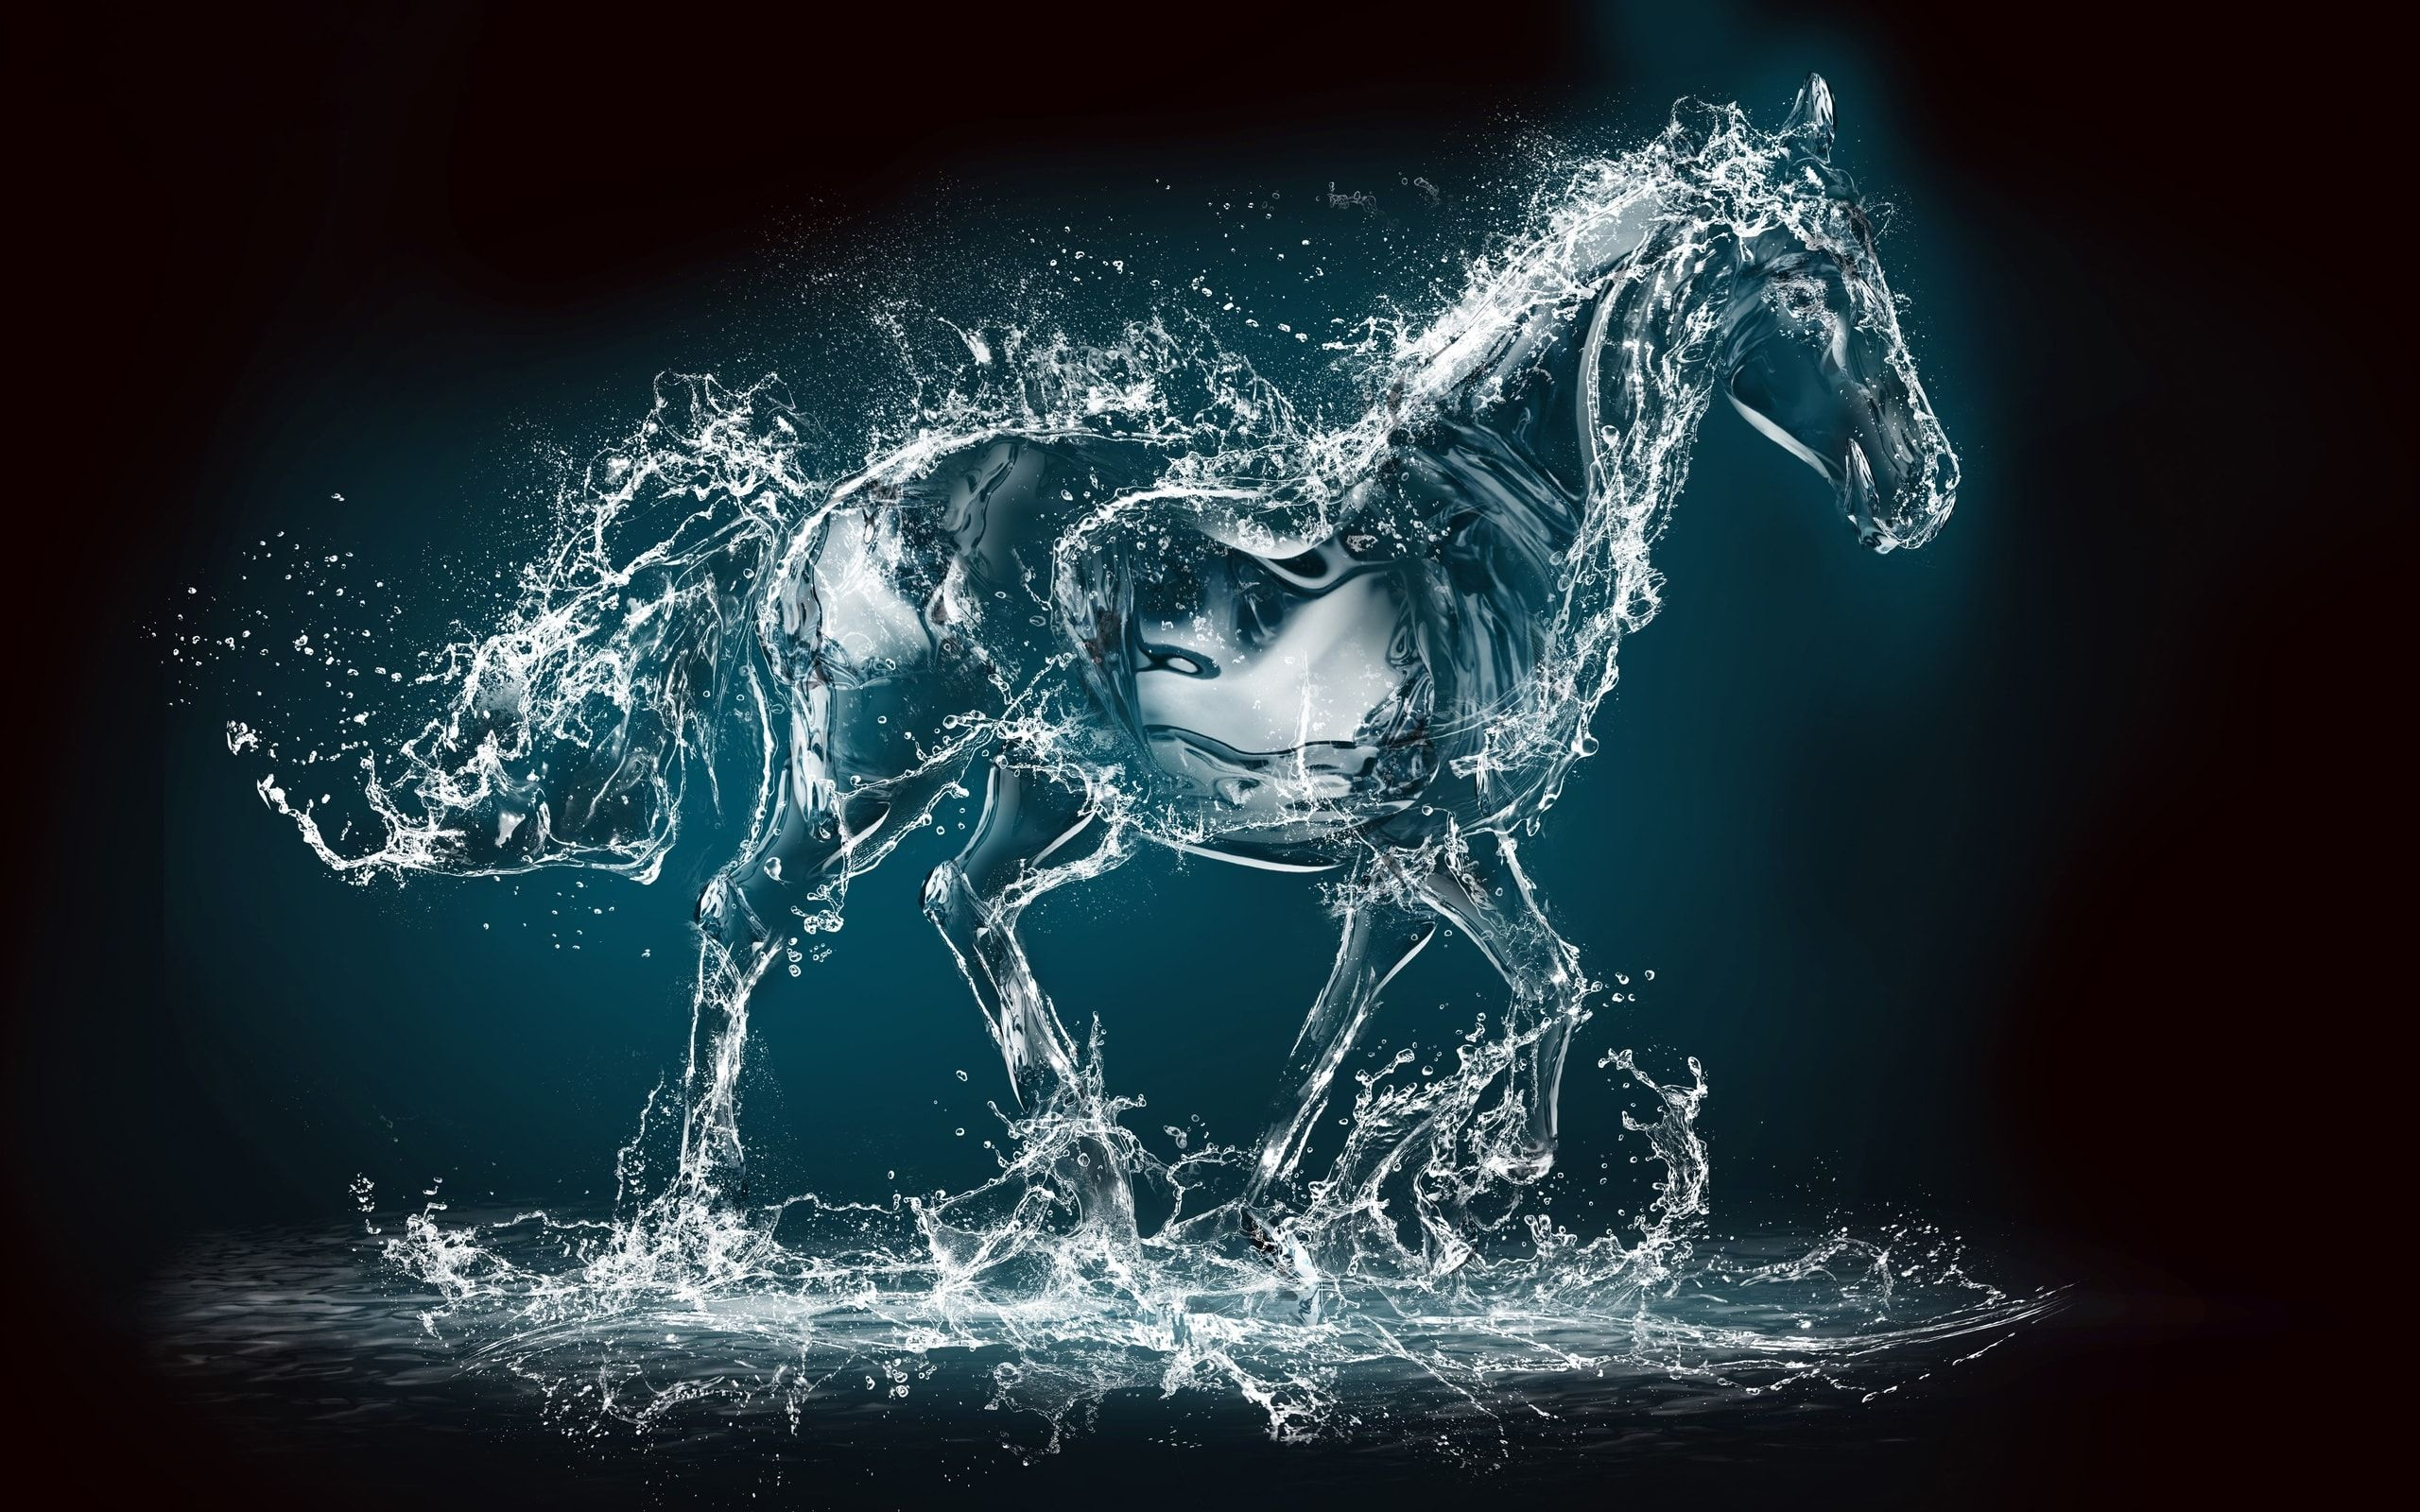 Water Horse Digital Art   Water Horse Digital Art is an HD desktop wallpaper posted in our free image collection of awesome wallpapers. You can download Water Horse Digital Art...